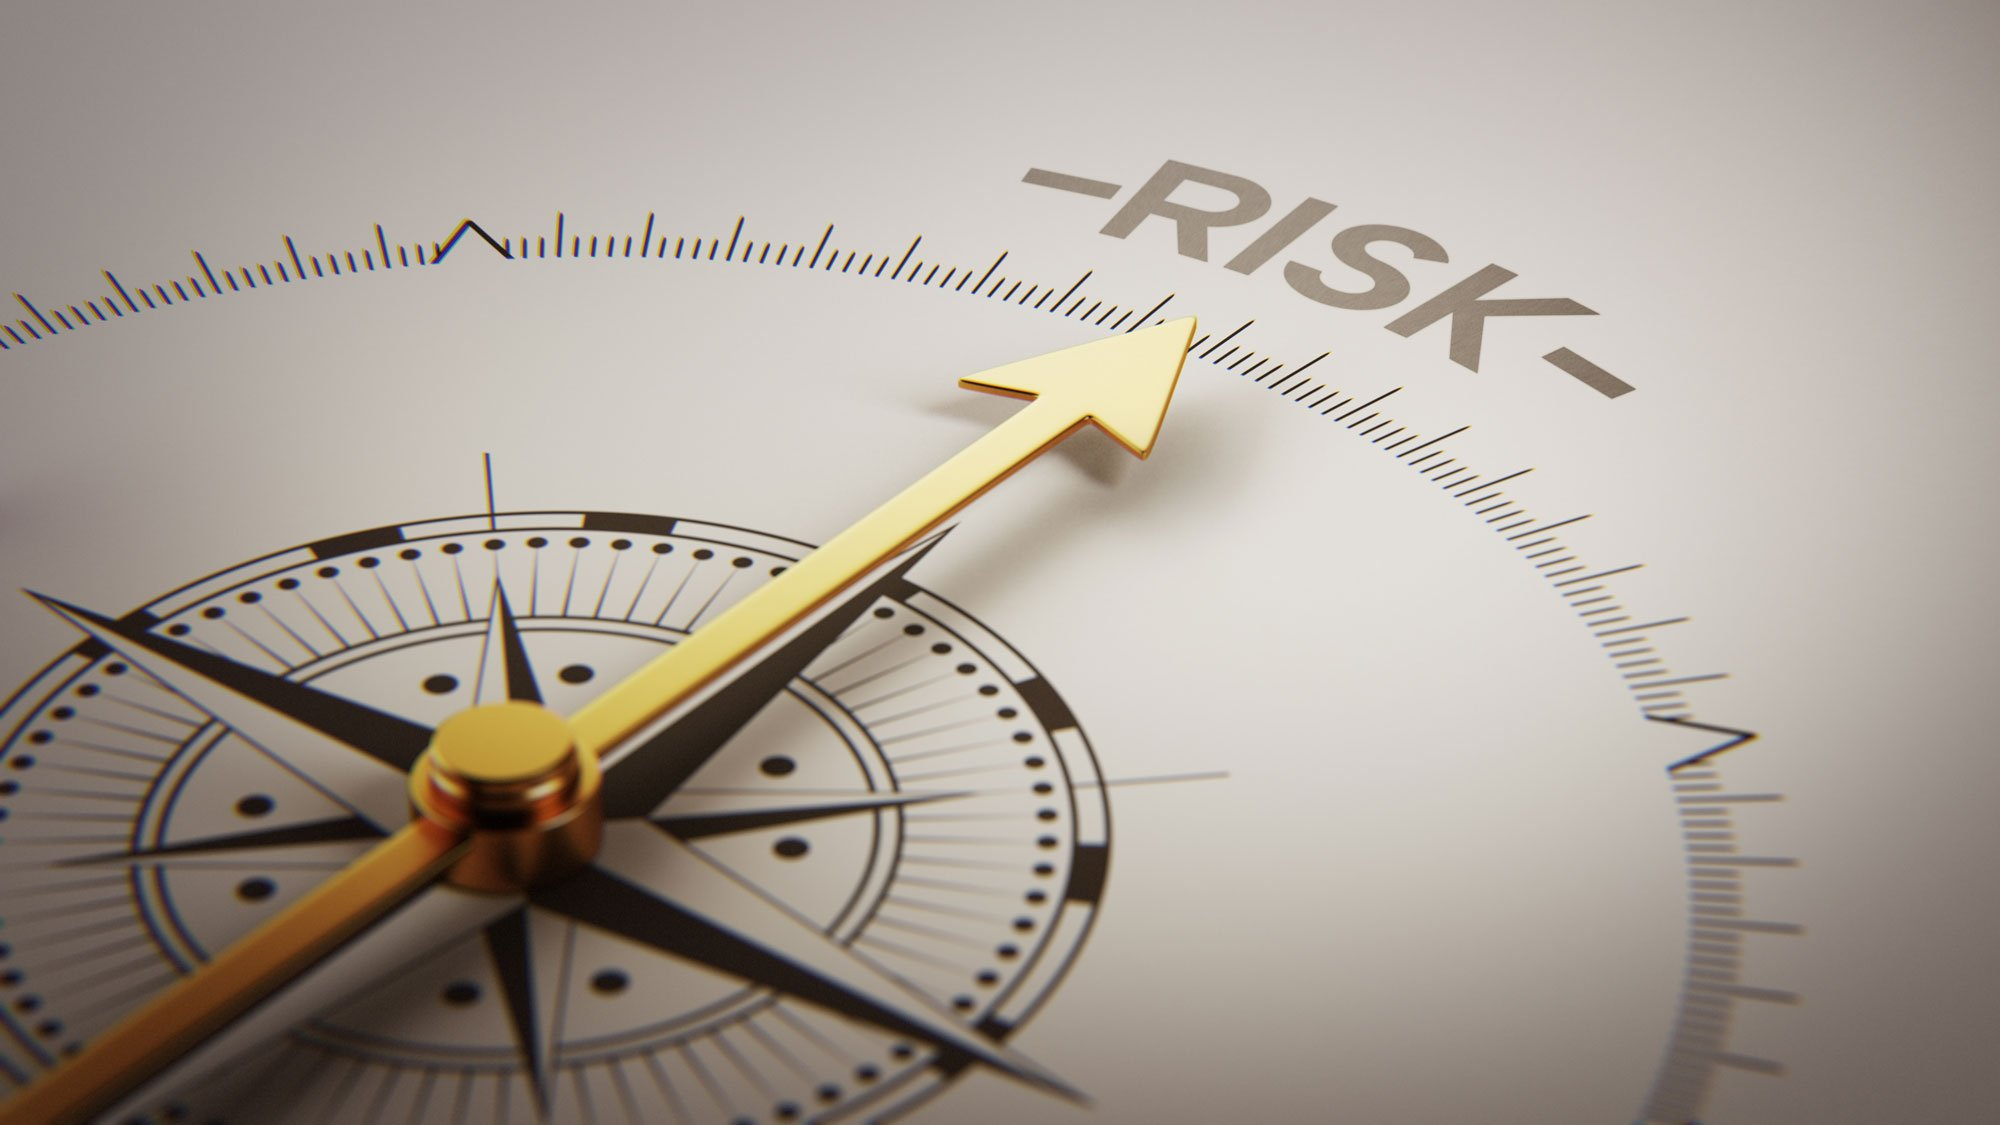 Opaque square of Risk Management – Four misconceptions